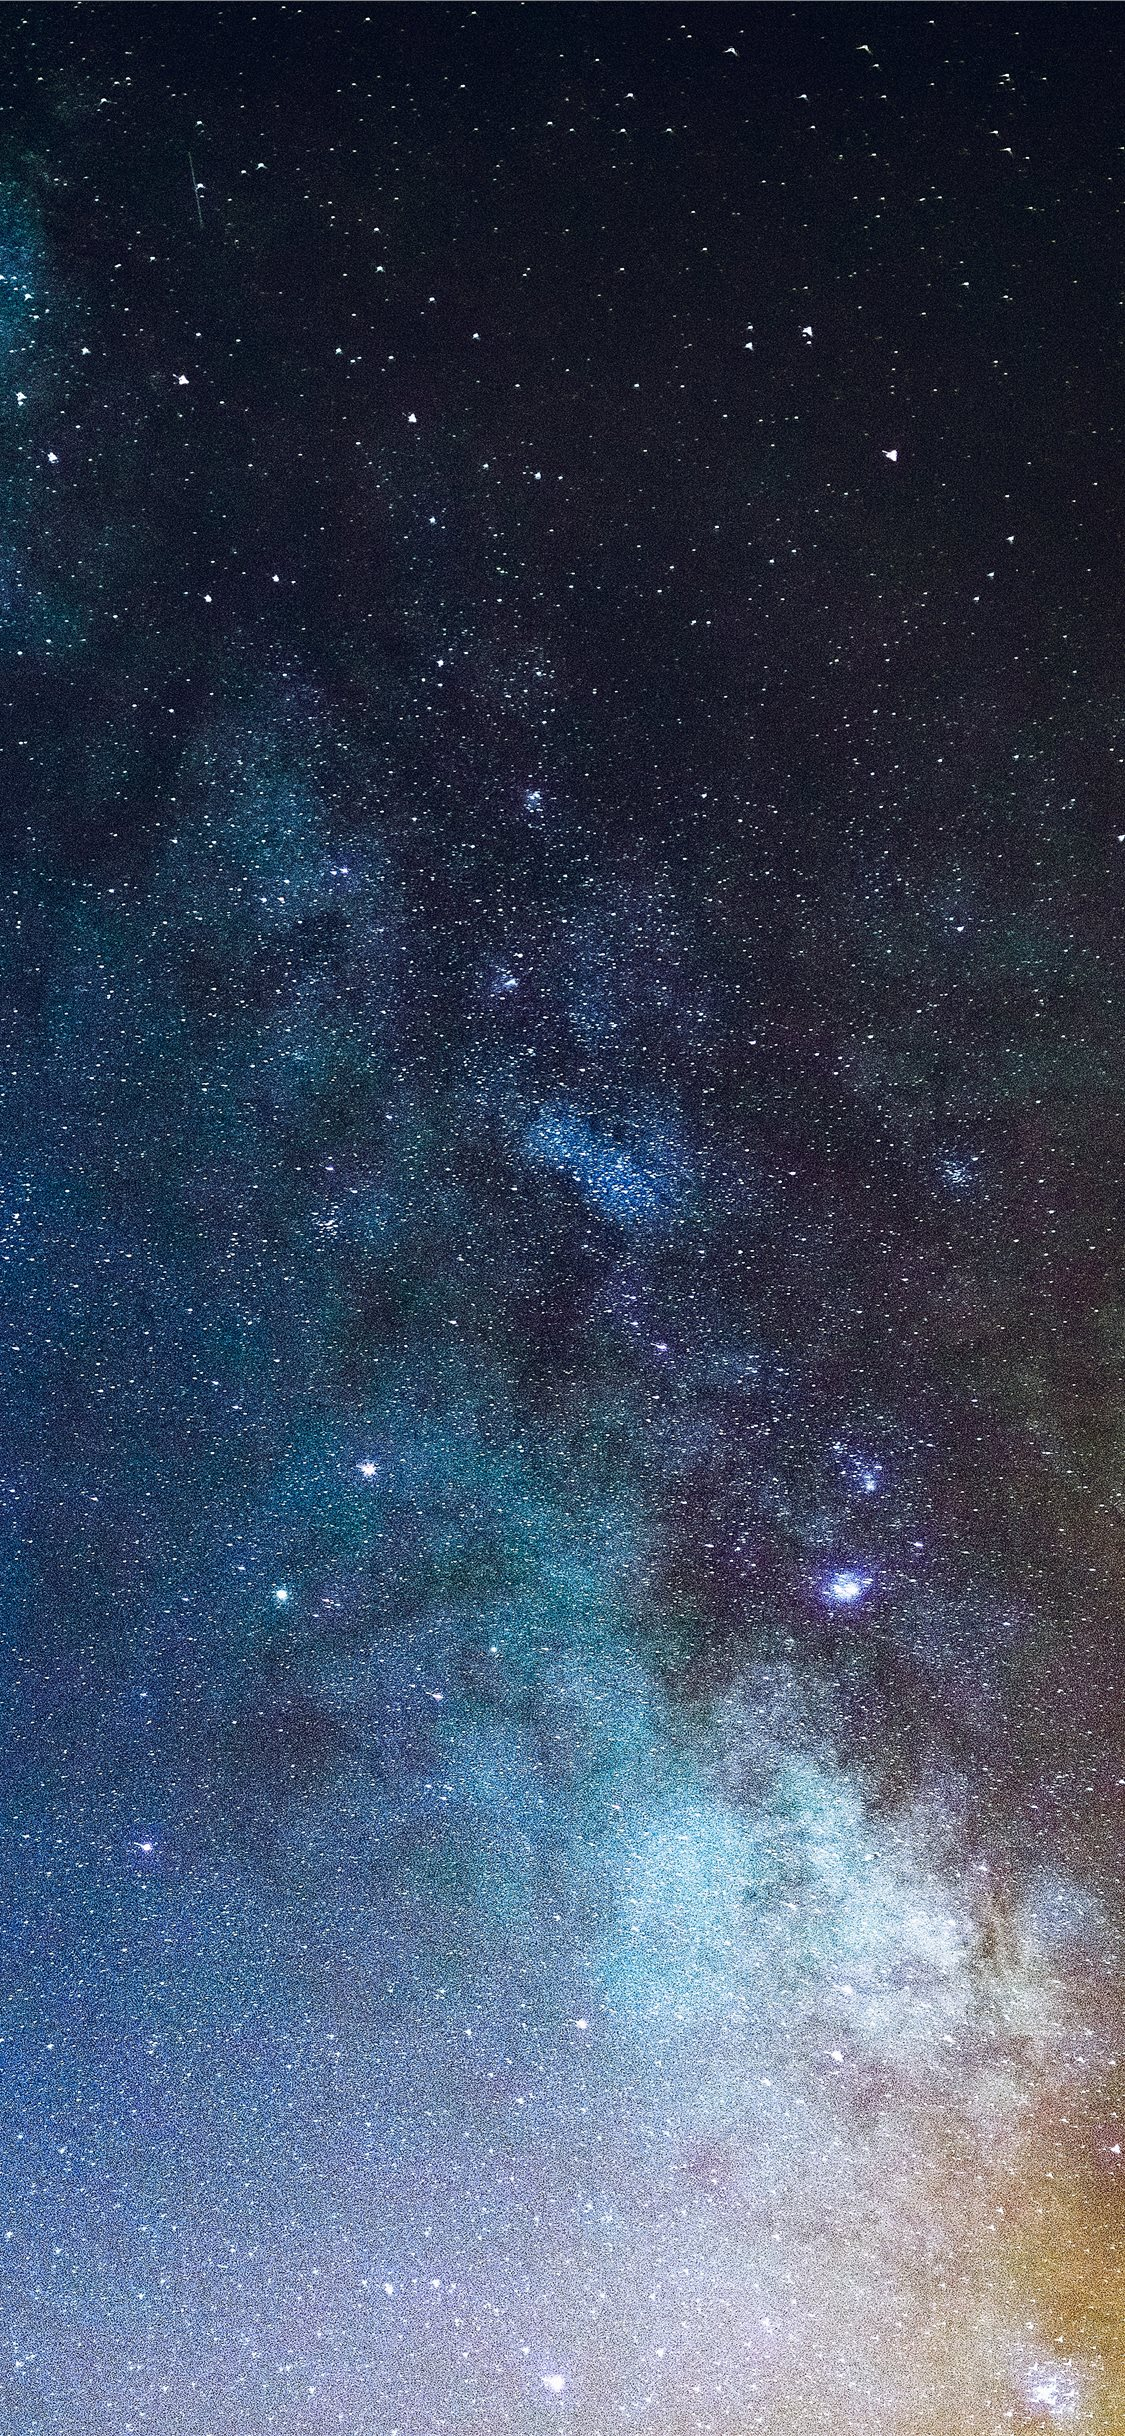 Milky Way over Quelfes Portugal iphone x wallpaper ilikewallpaper com